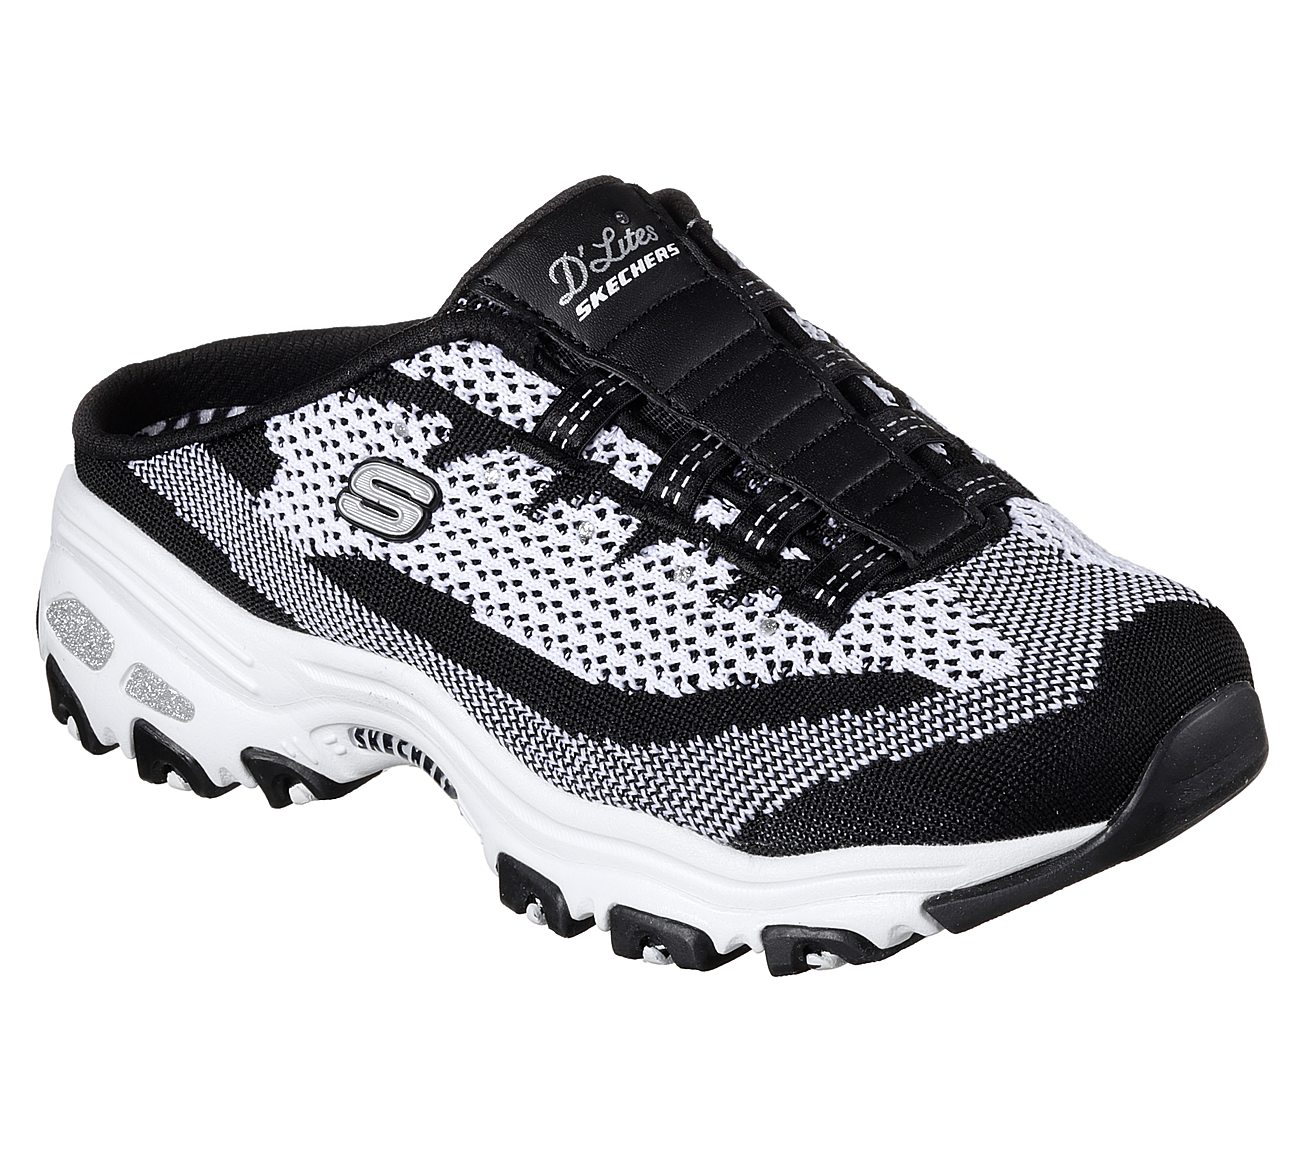 Sketchers shoes –Things To Know Before Buying the Skechers Shoes